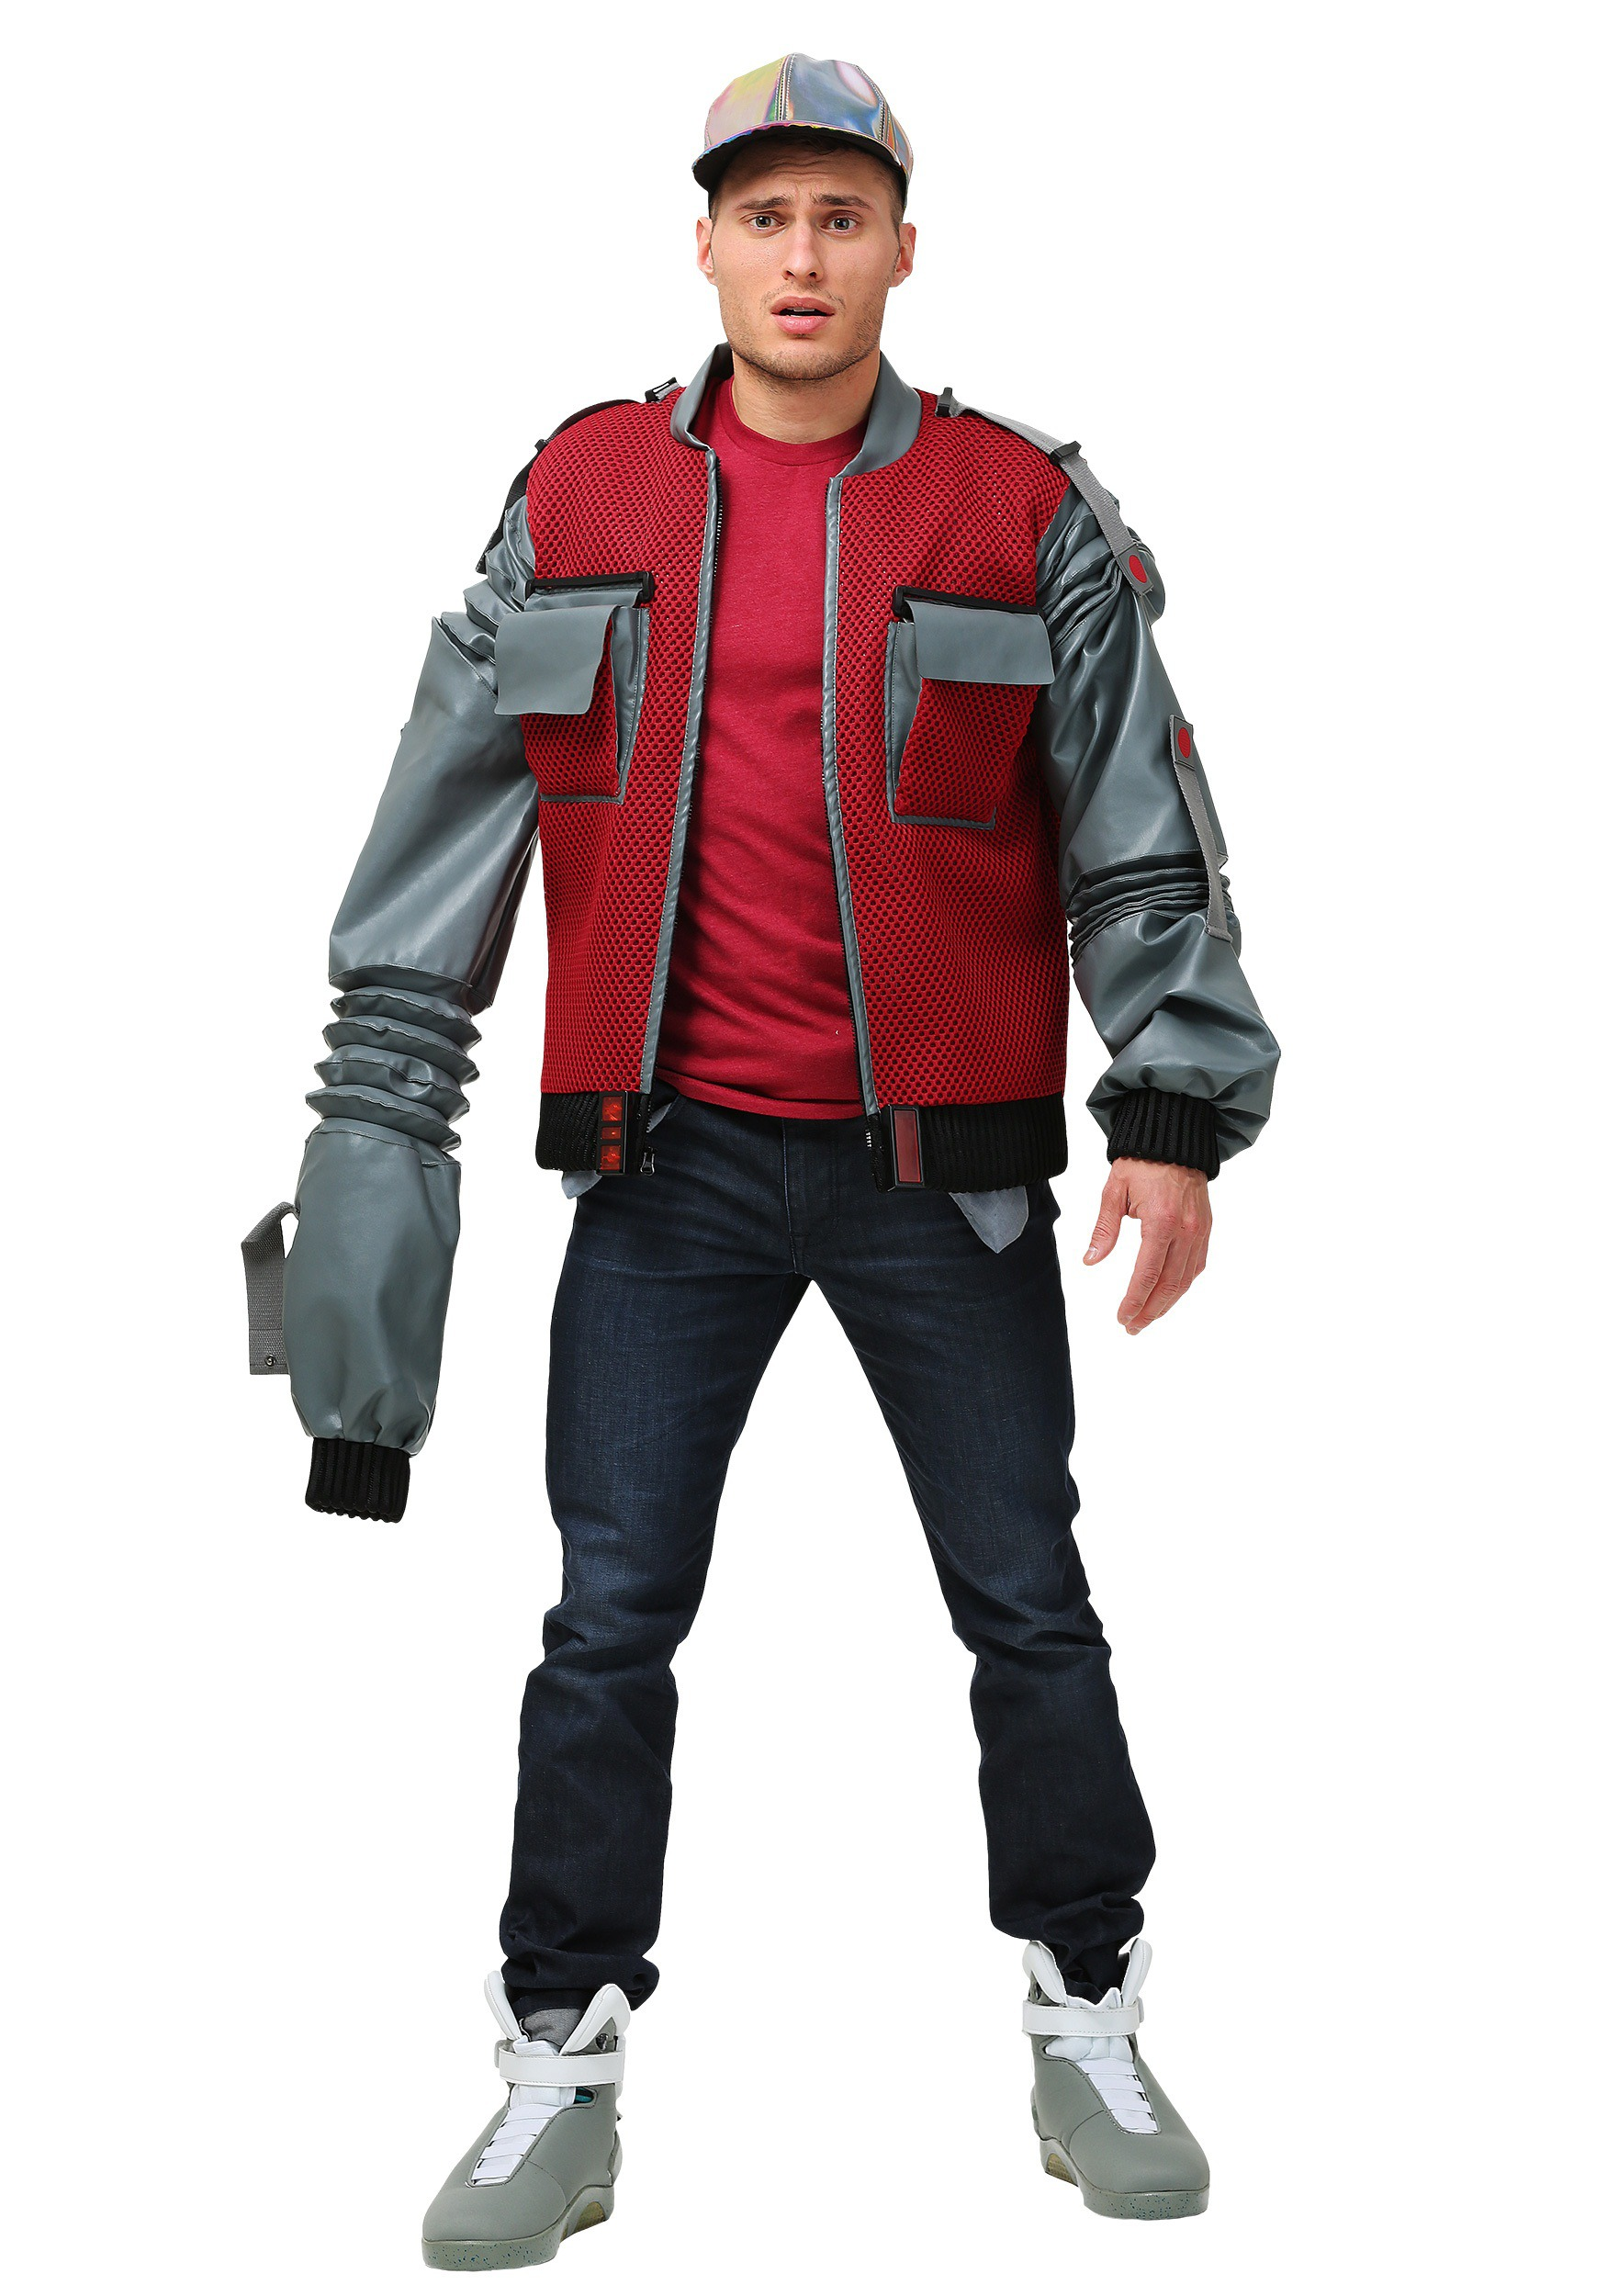 Men's Plus Size Authentic Marty McFly Jacket Costume from Back to the Future